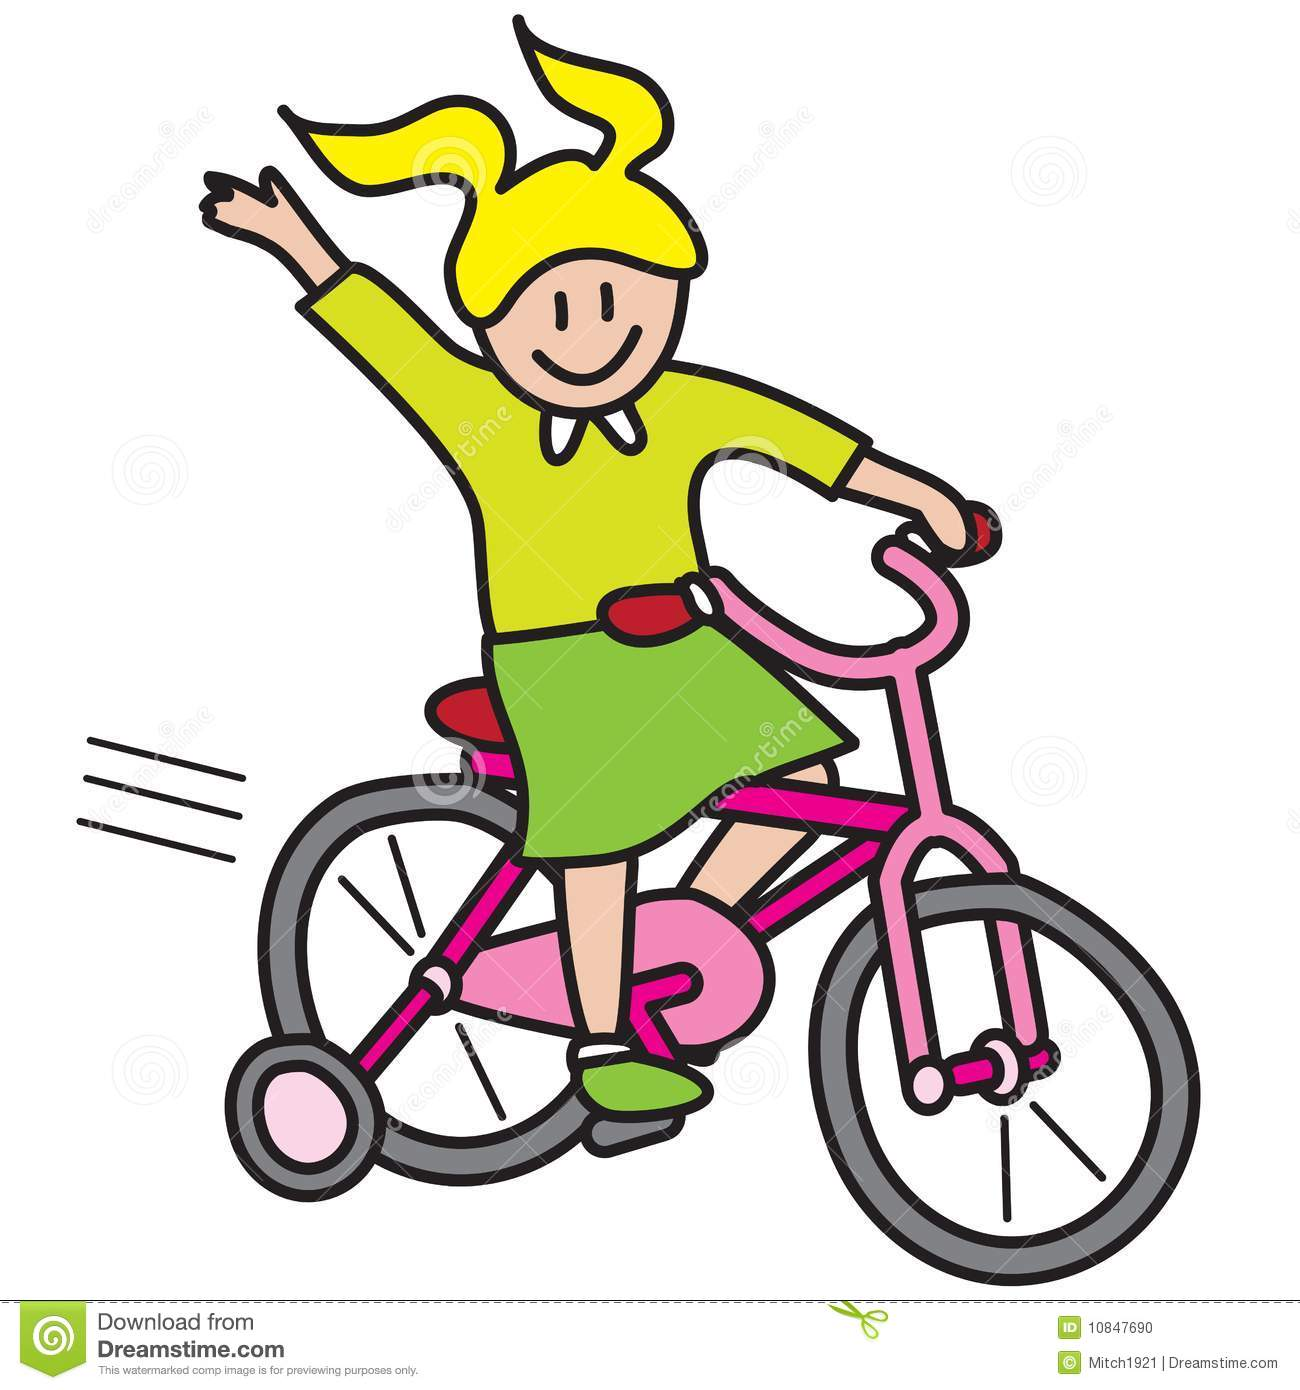 Girl riding bicycle vector illustration isolated on white background.